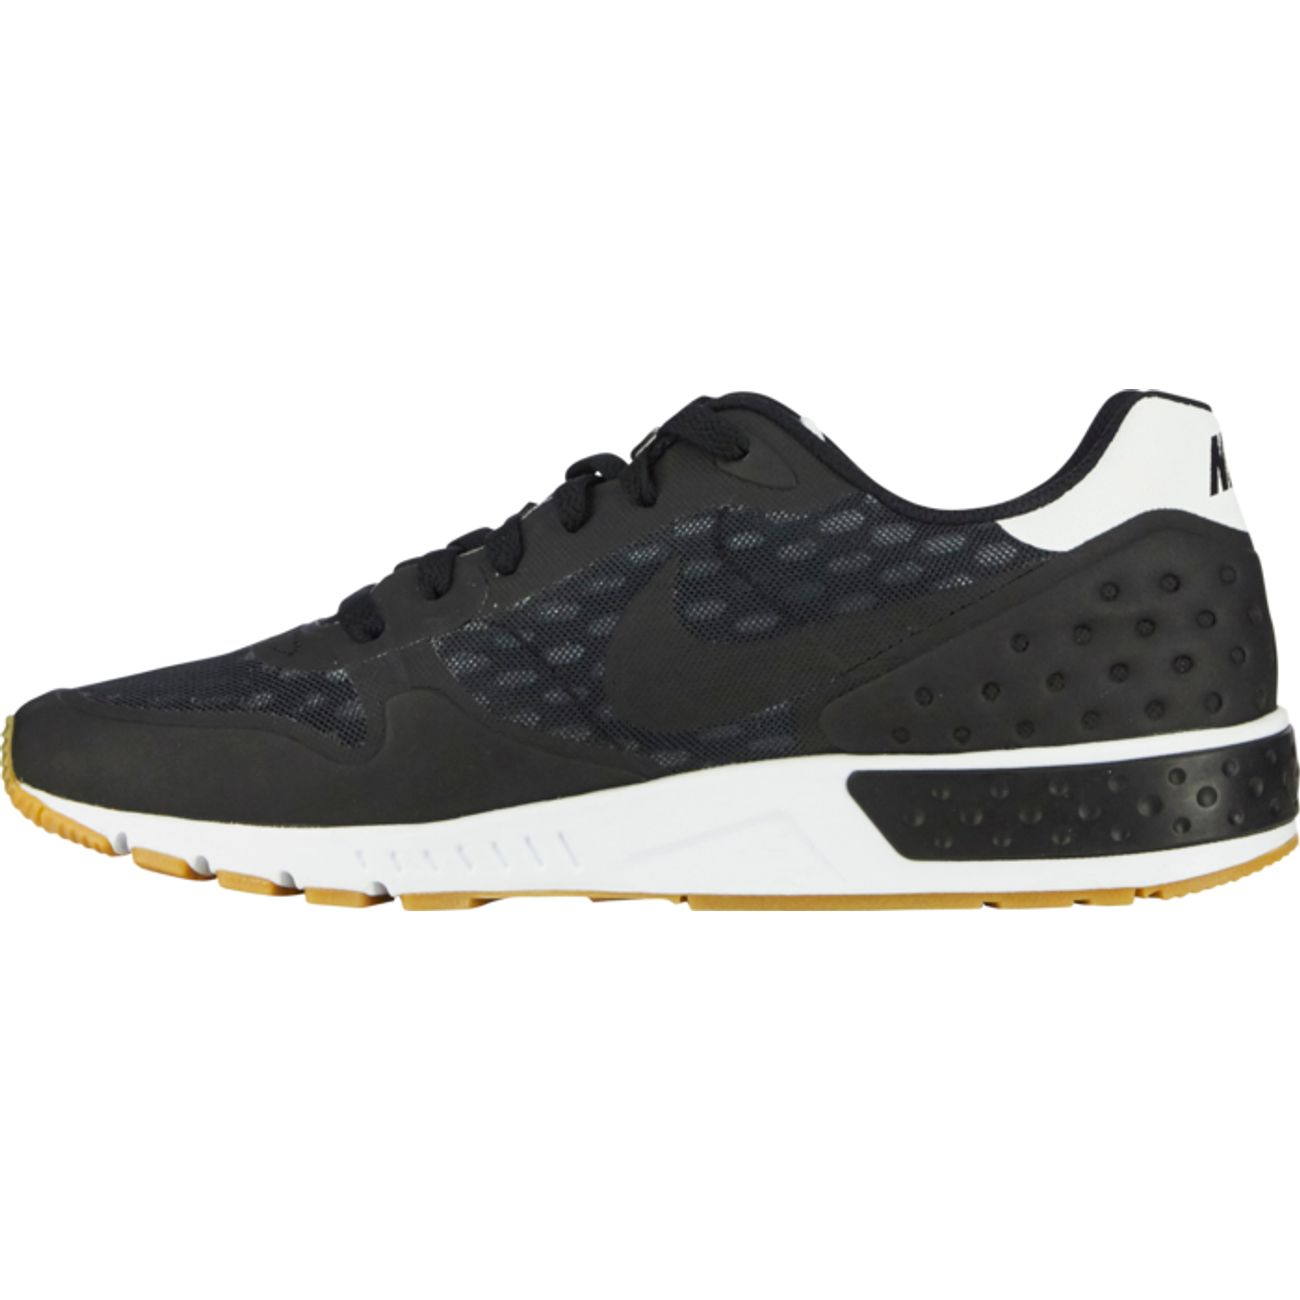 reputable site 083e7 a6d8a ... CHAUSSURES BASSES homme NIKE NIGHTGAZER LW SE ...